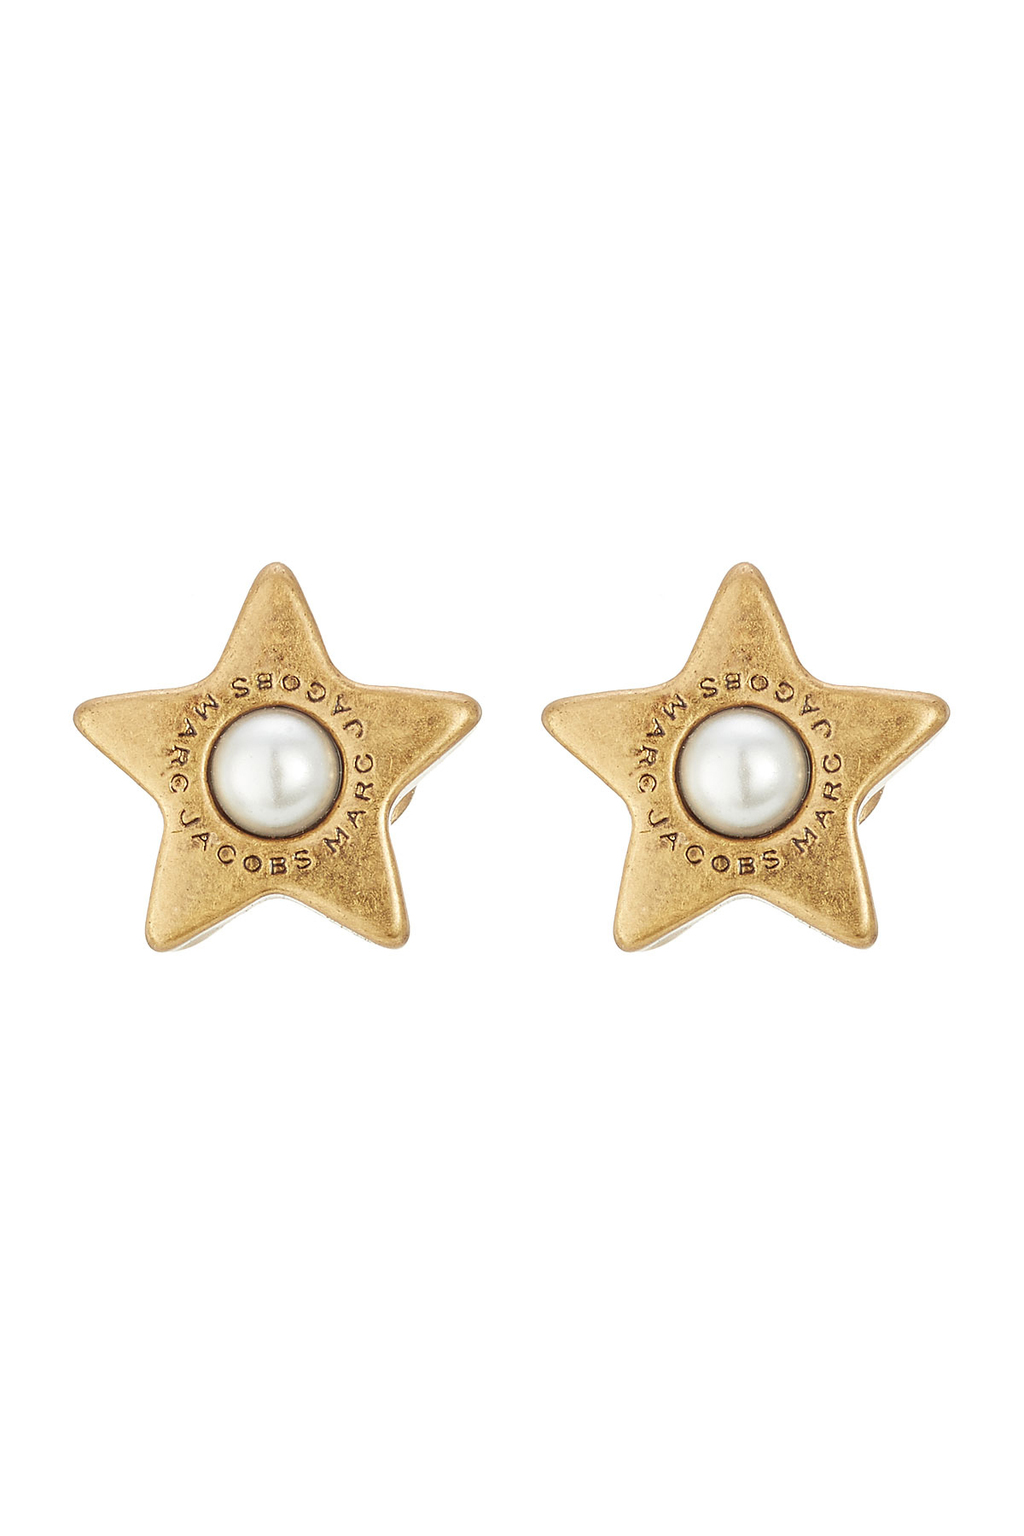 Star Earrings With Faux Pearls - secondary colour: ivory/cream; predominant colour: gold; occasions: evening; style: stud; length: short; size: standard; material: chain/metal; fastening: pierced; finish: metallic; embellishment: pearls; season: a/w 2016; wardrobe: event